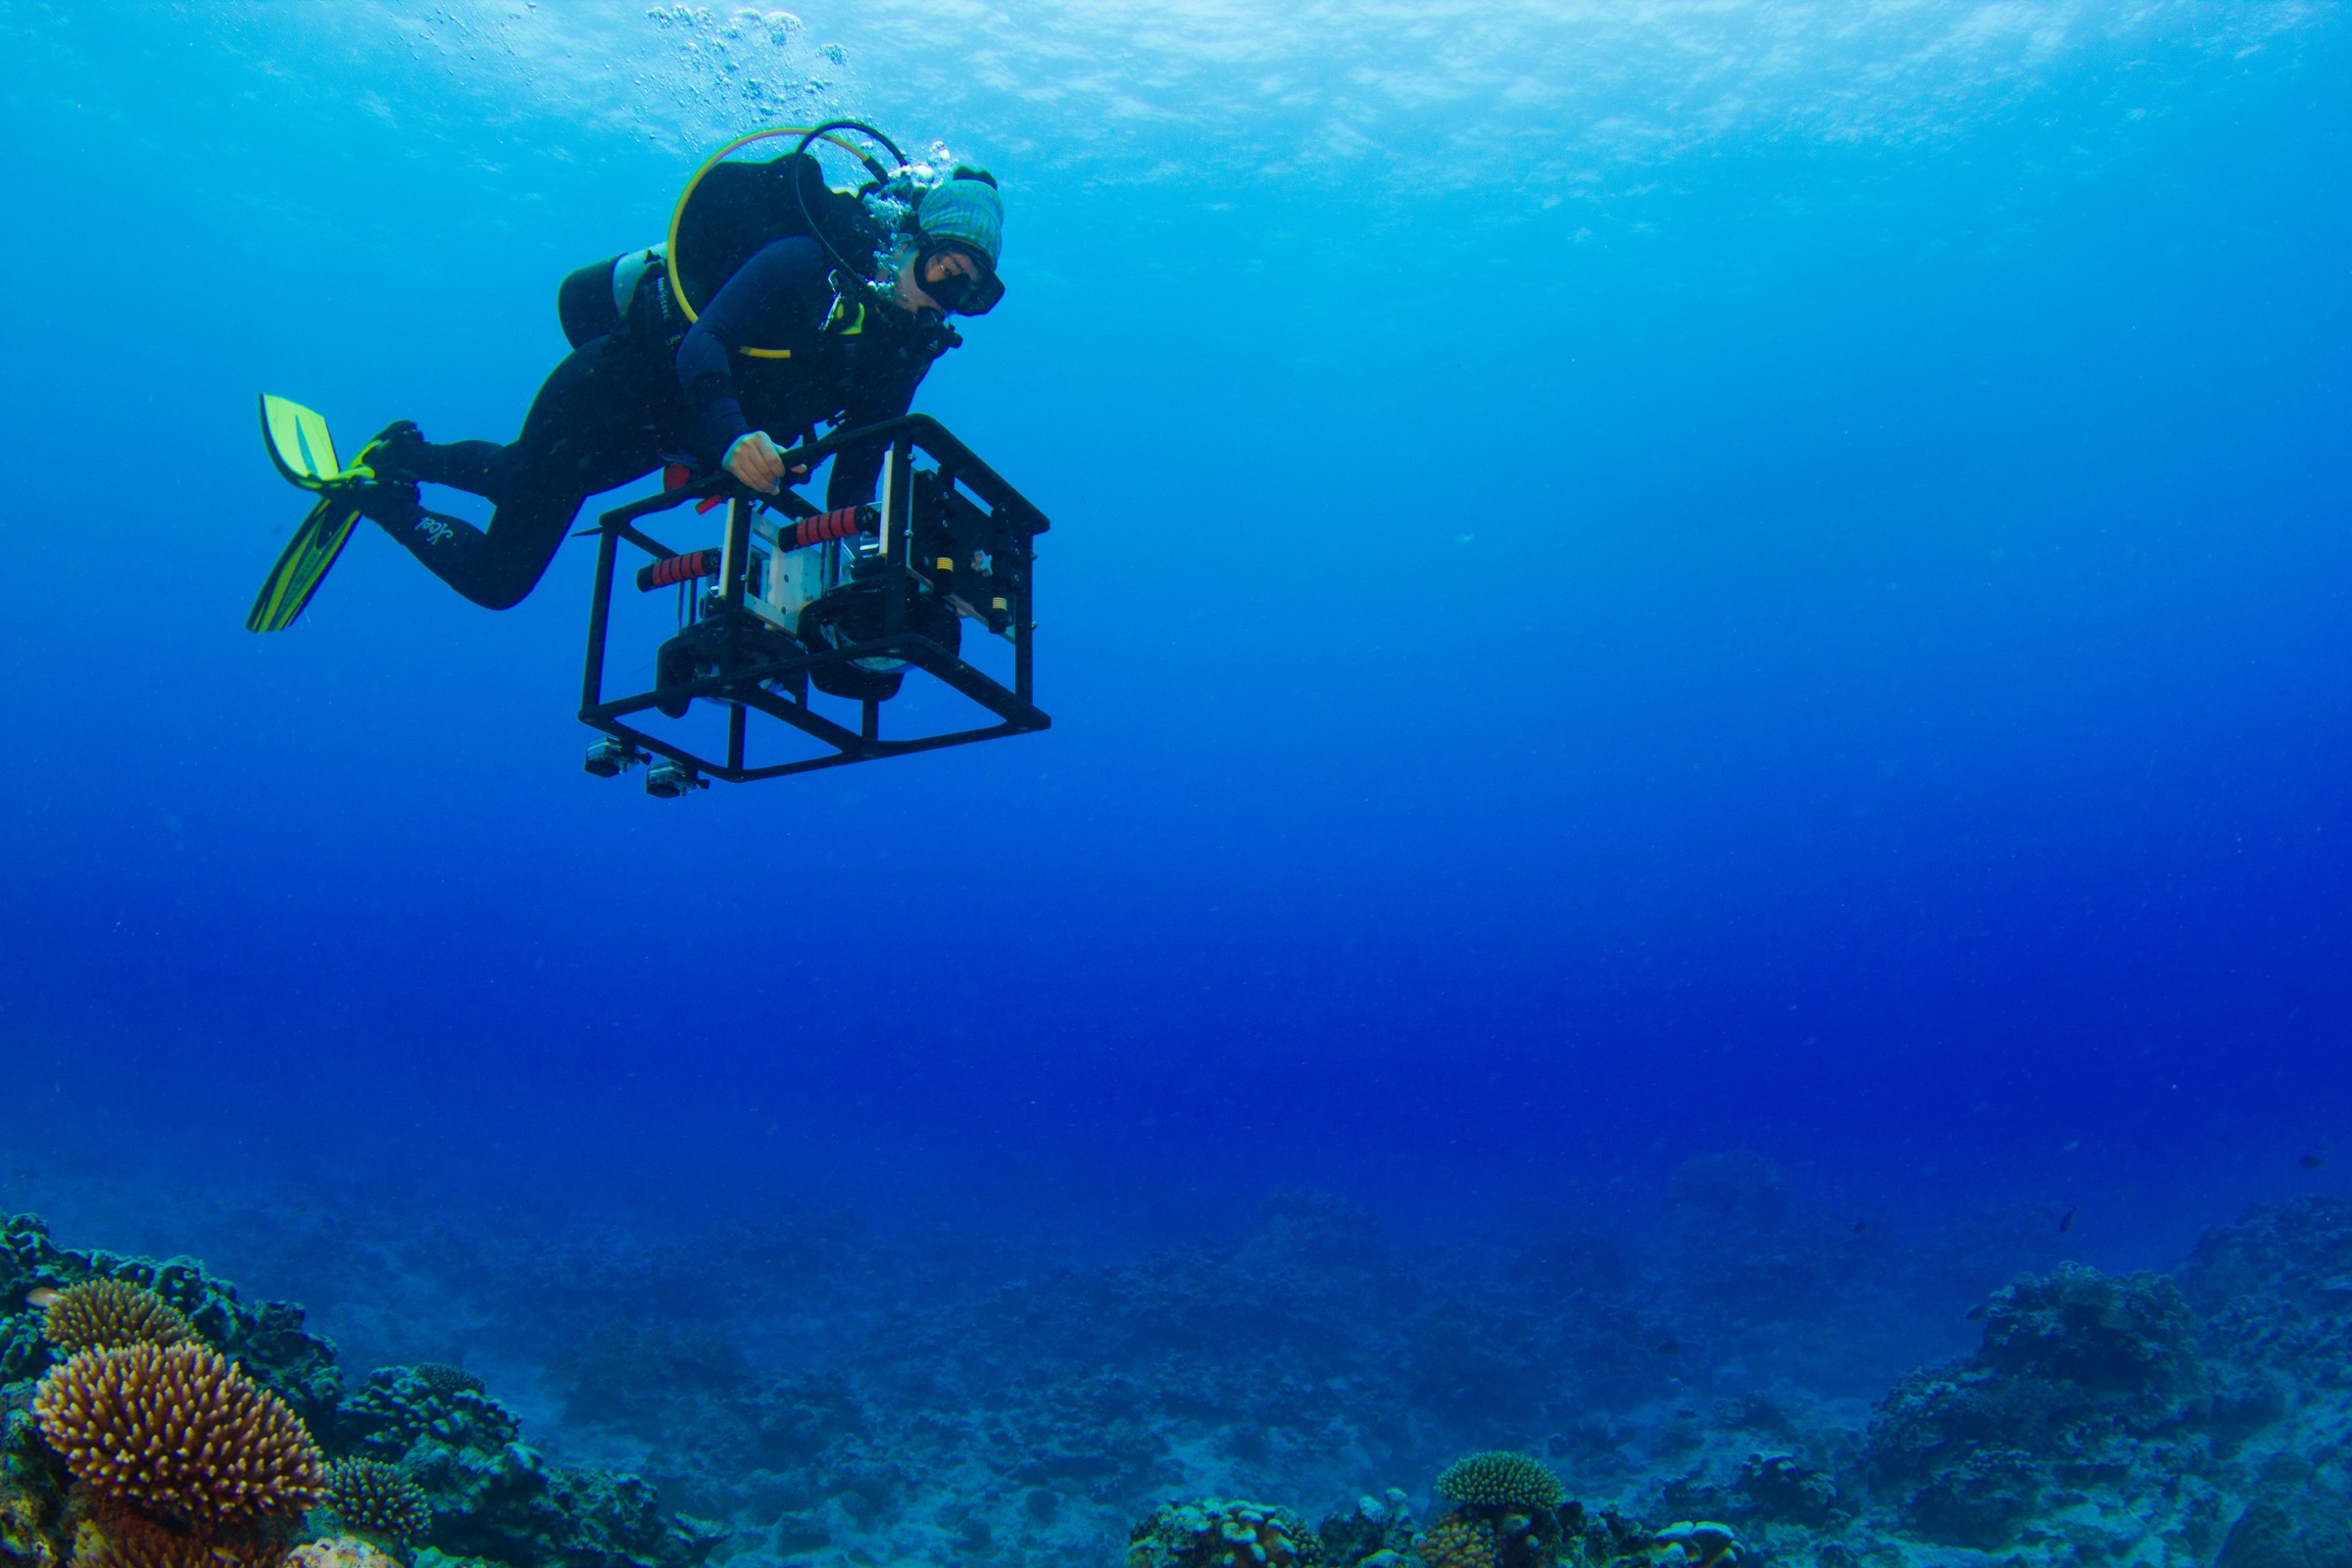 Nicole Pederson pilots the mosaic camera system taking images of the coral reef ecosystem off the coast of Rarotonga. Photograph by Brian Zgliczynski/100 Island Challenge